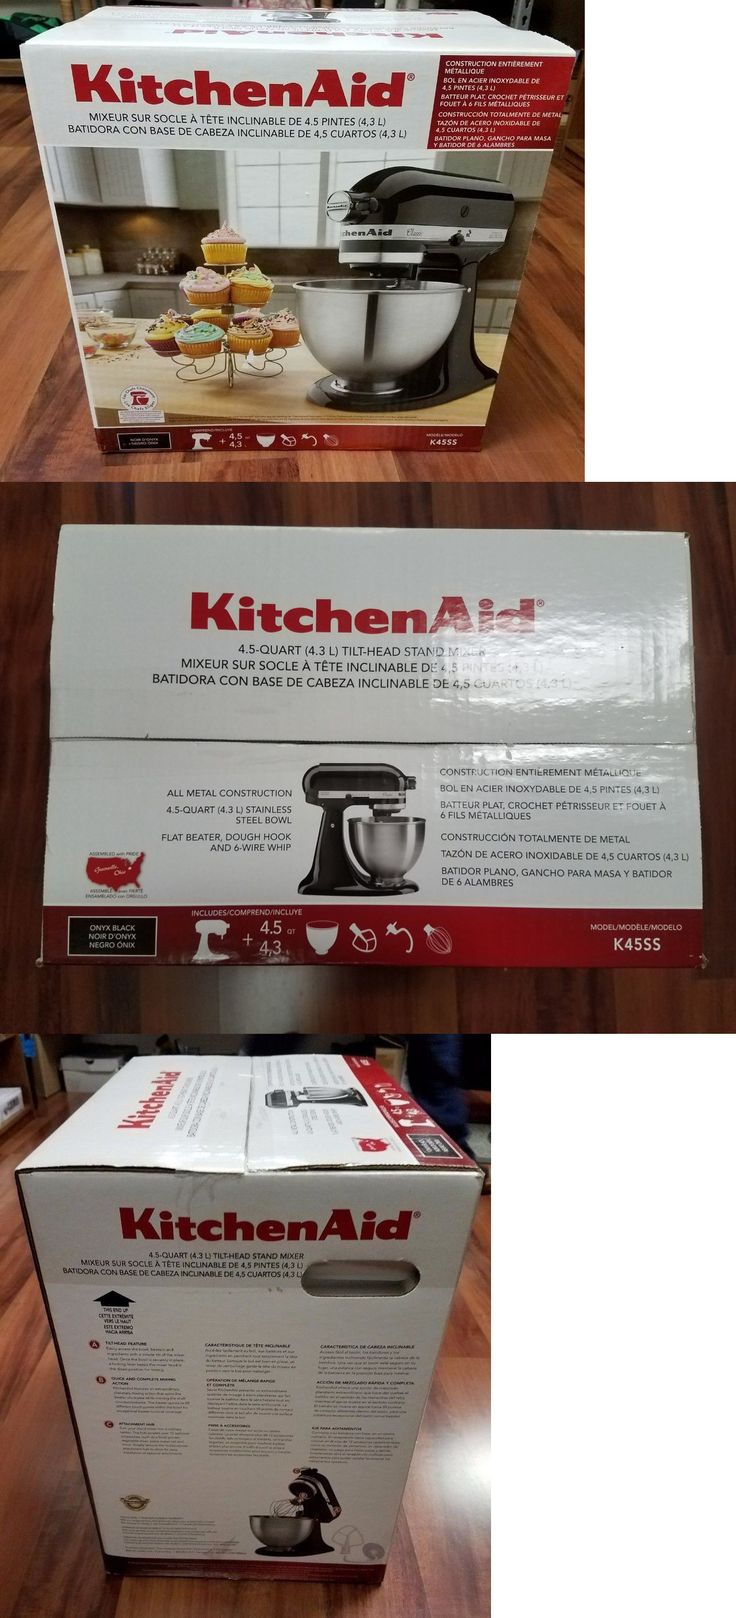 Mixers Countertop 133701: New Kitchenaid K45ss 4.5 Quart Classic 250 Watts Stand Mixer Black -> BUY IT NOW ONLY: $175 on eBay!